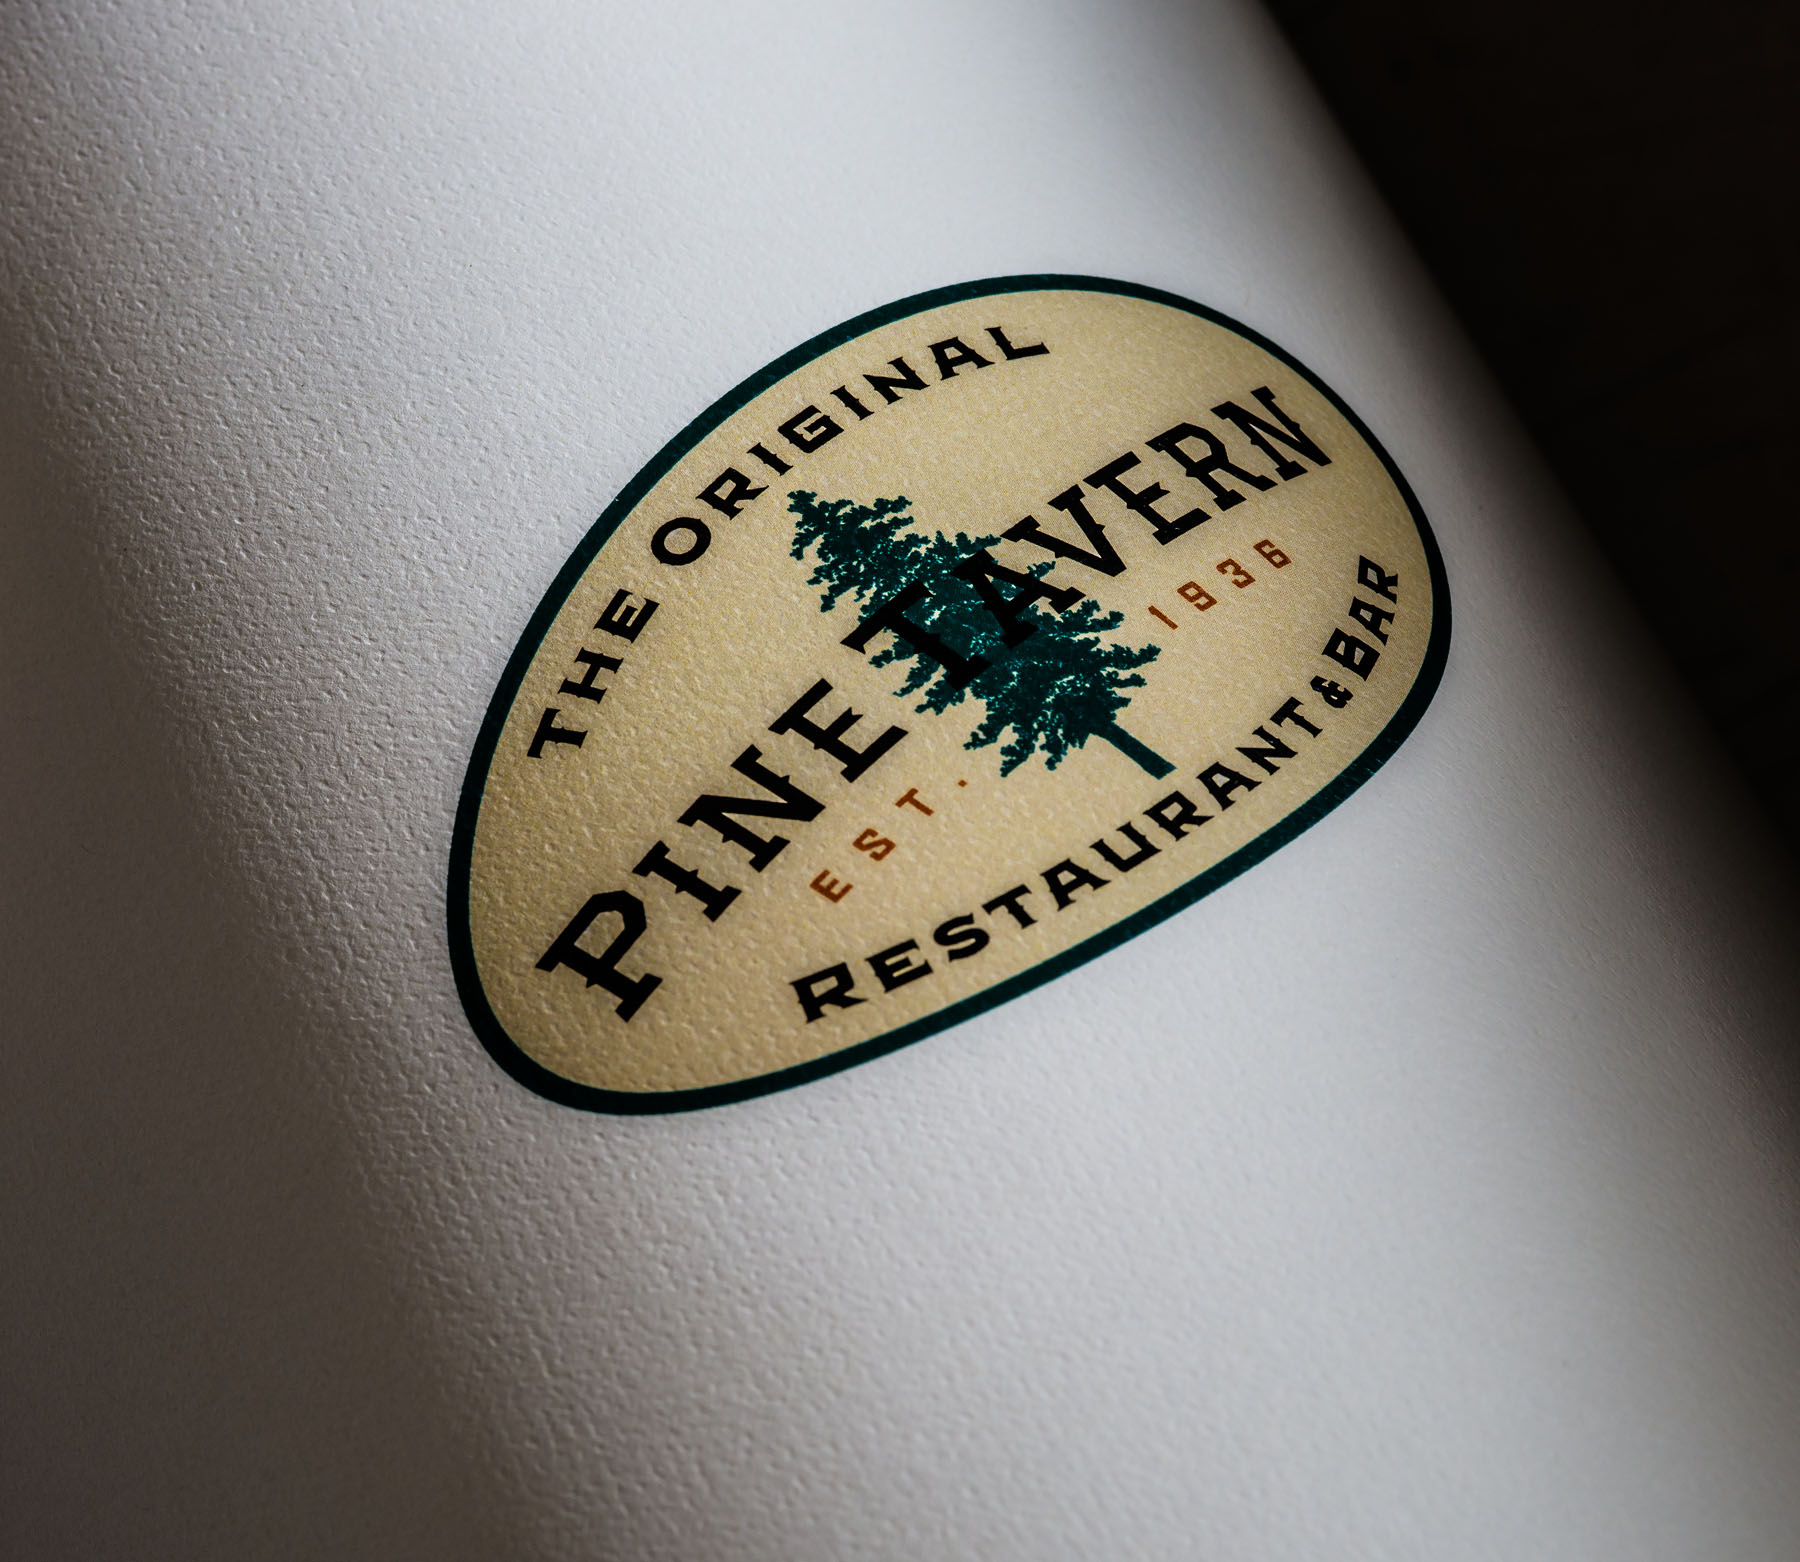 In the Limelight : Pine Tavern Restaurant and Bar